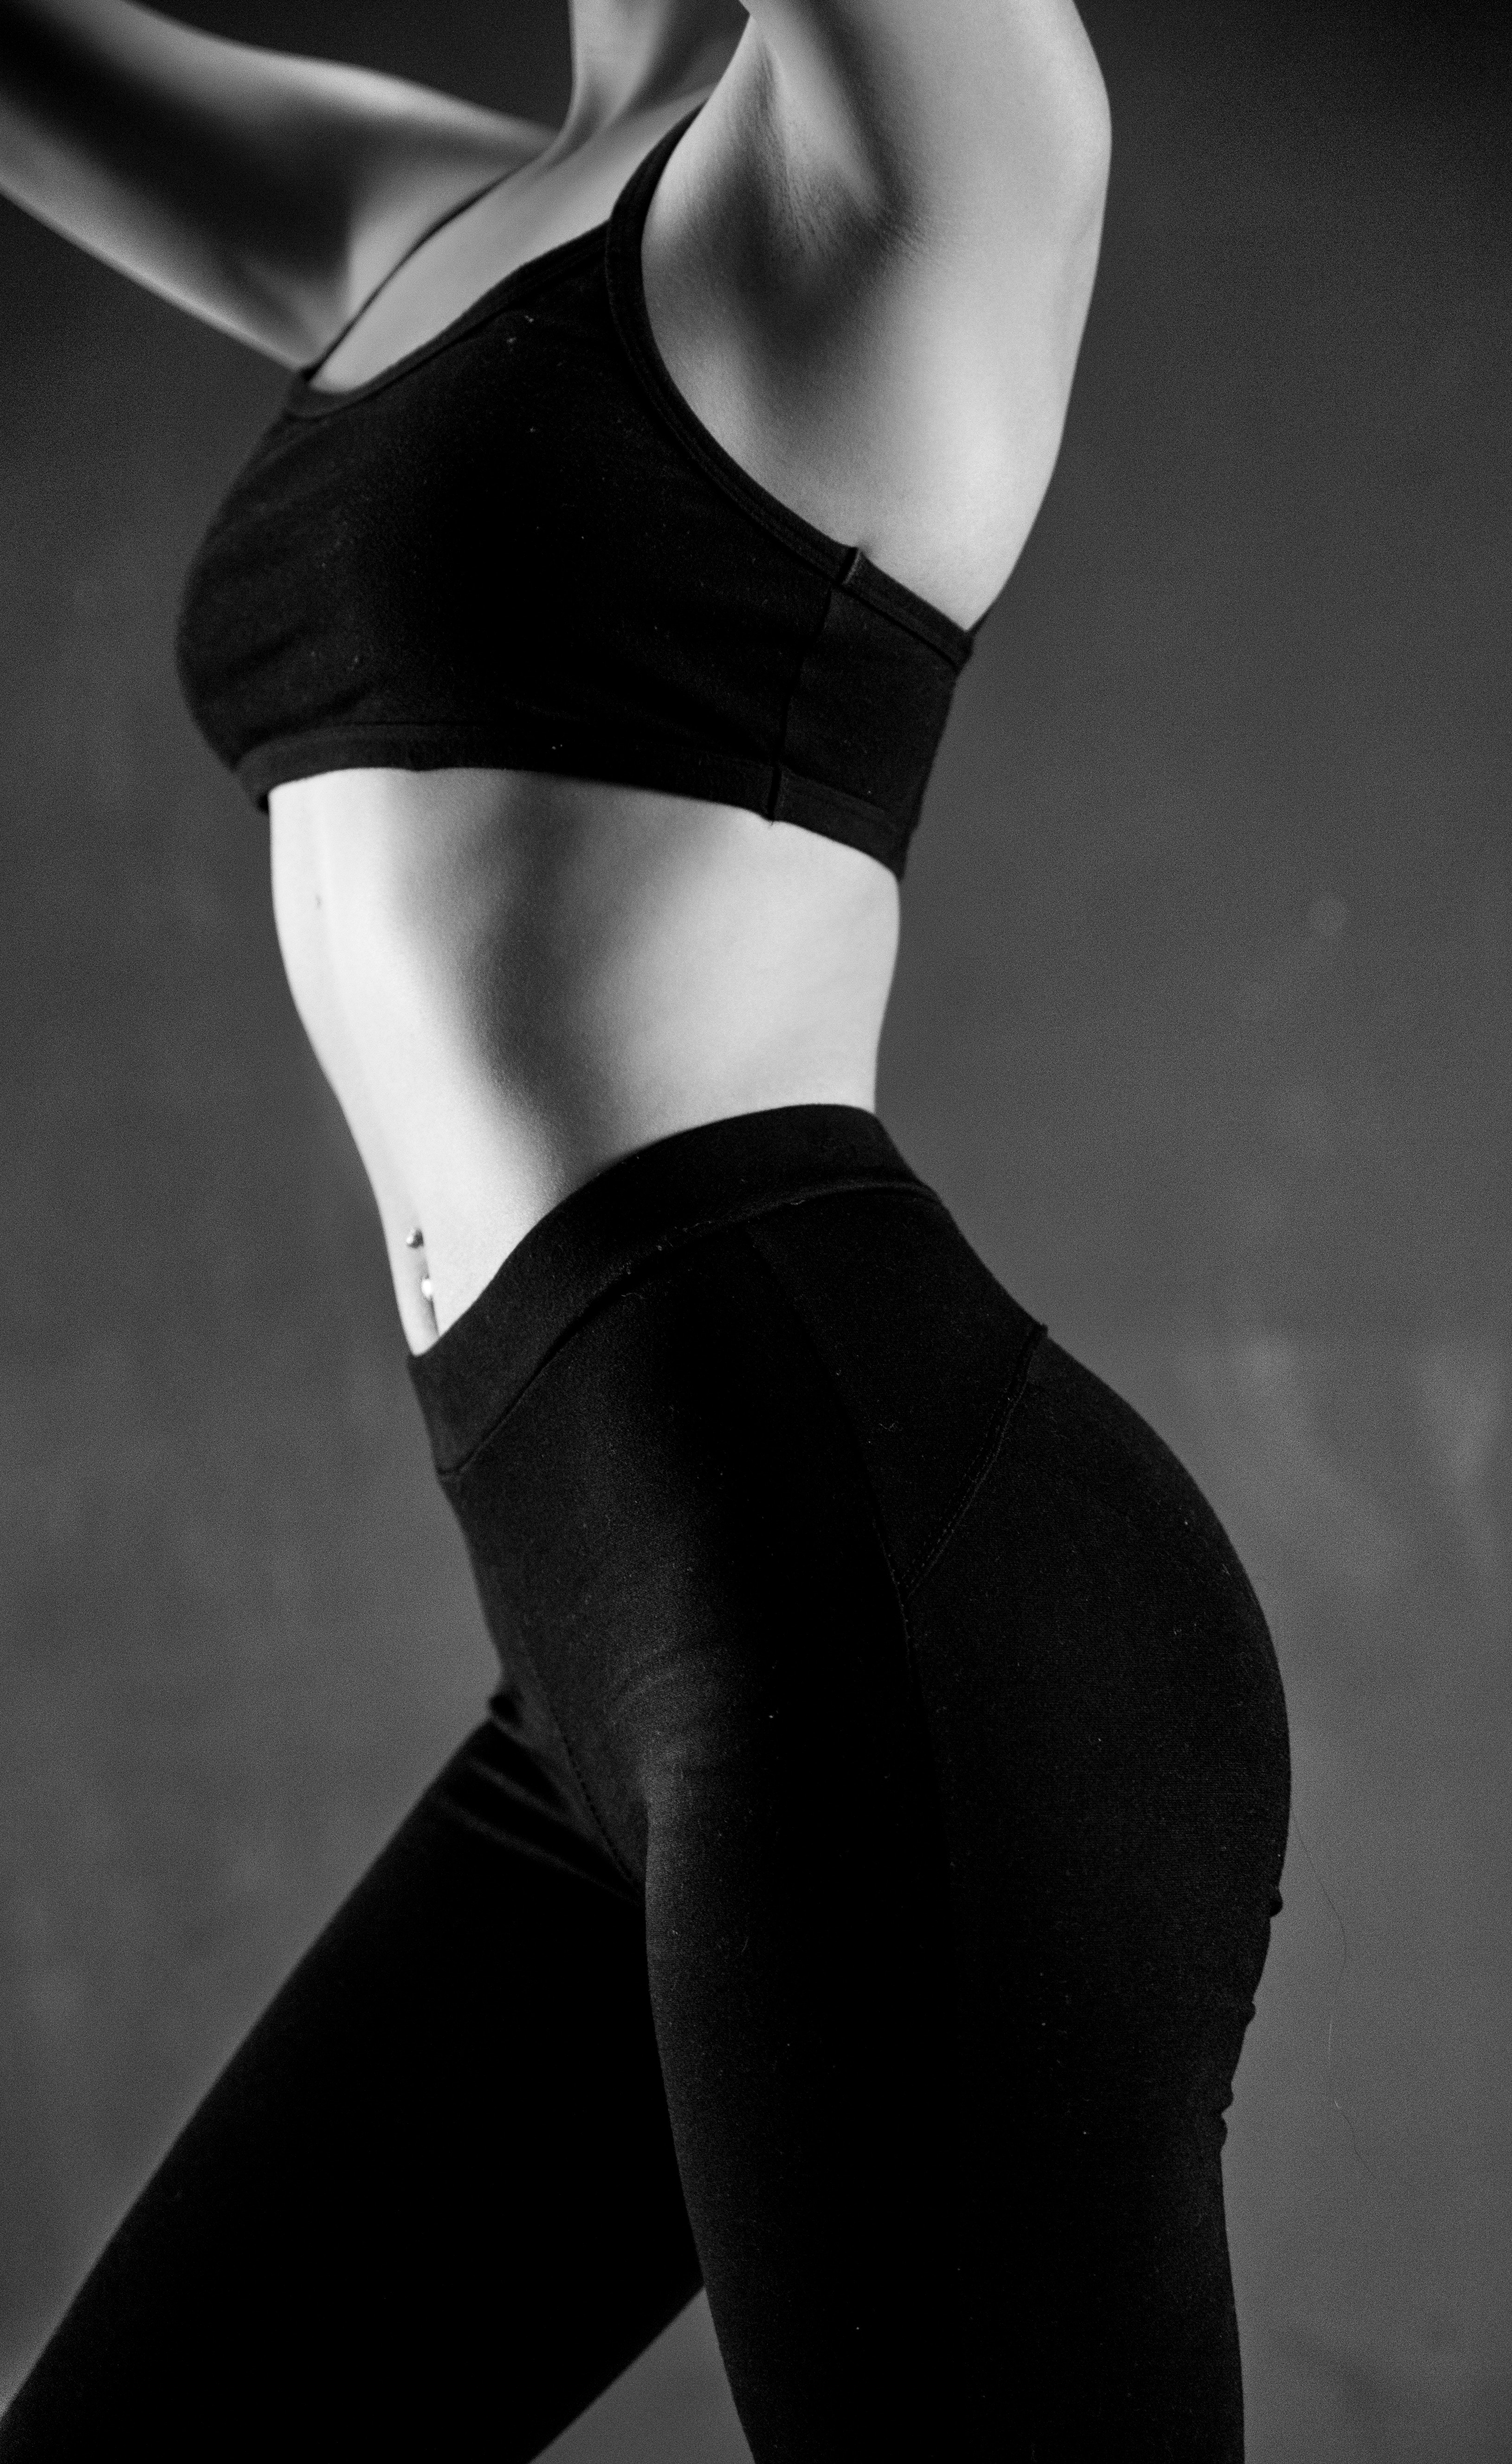 Liposuction or liposculpture surgery to recover forms